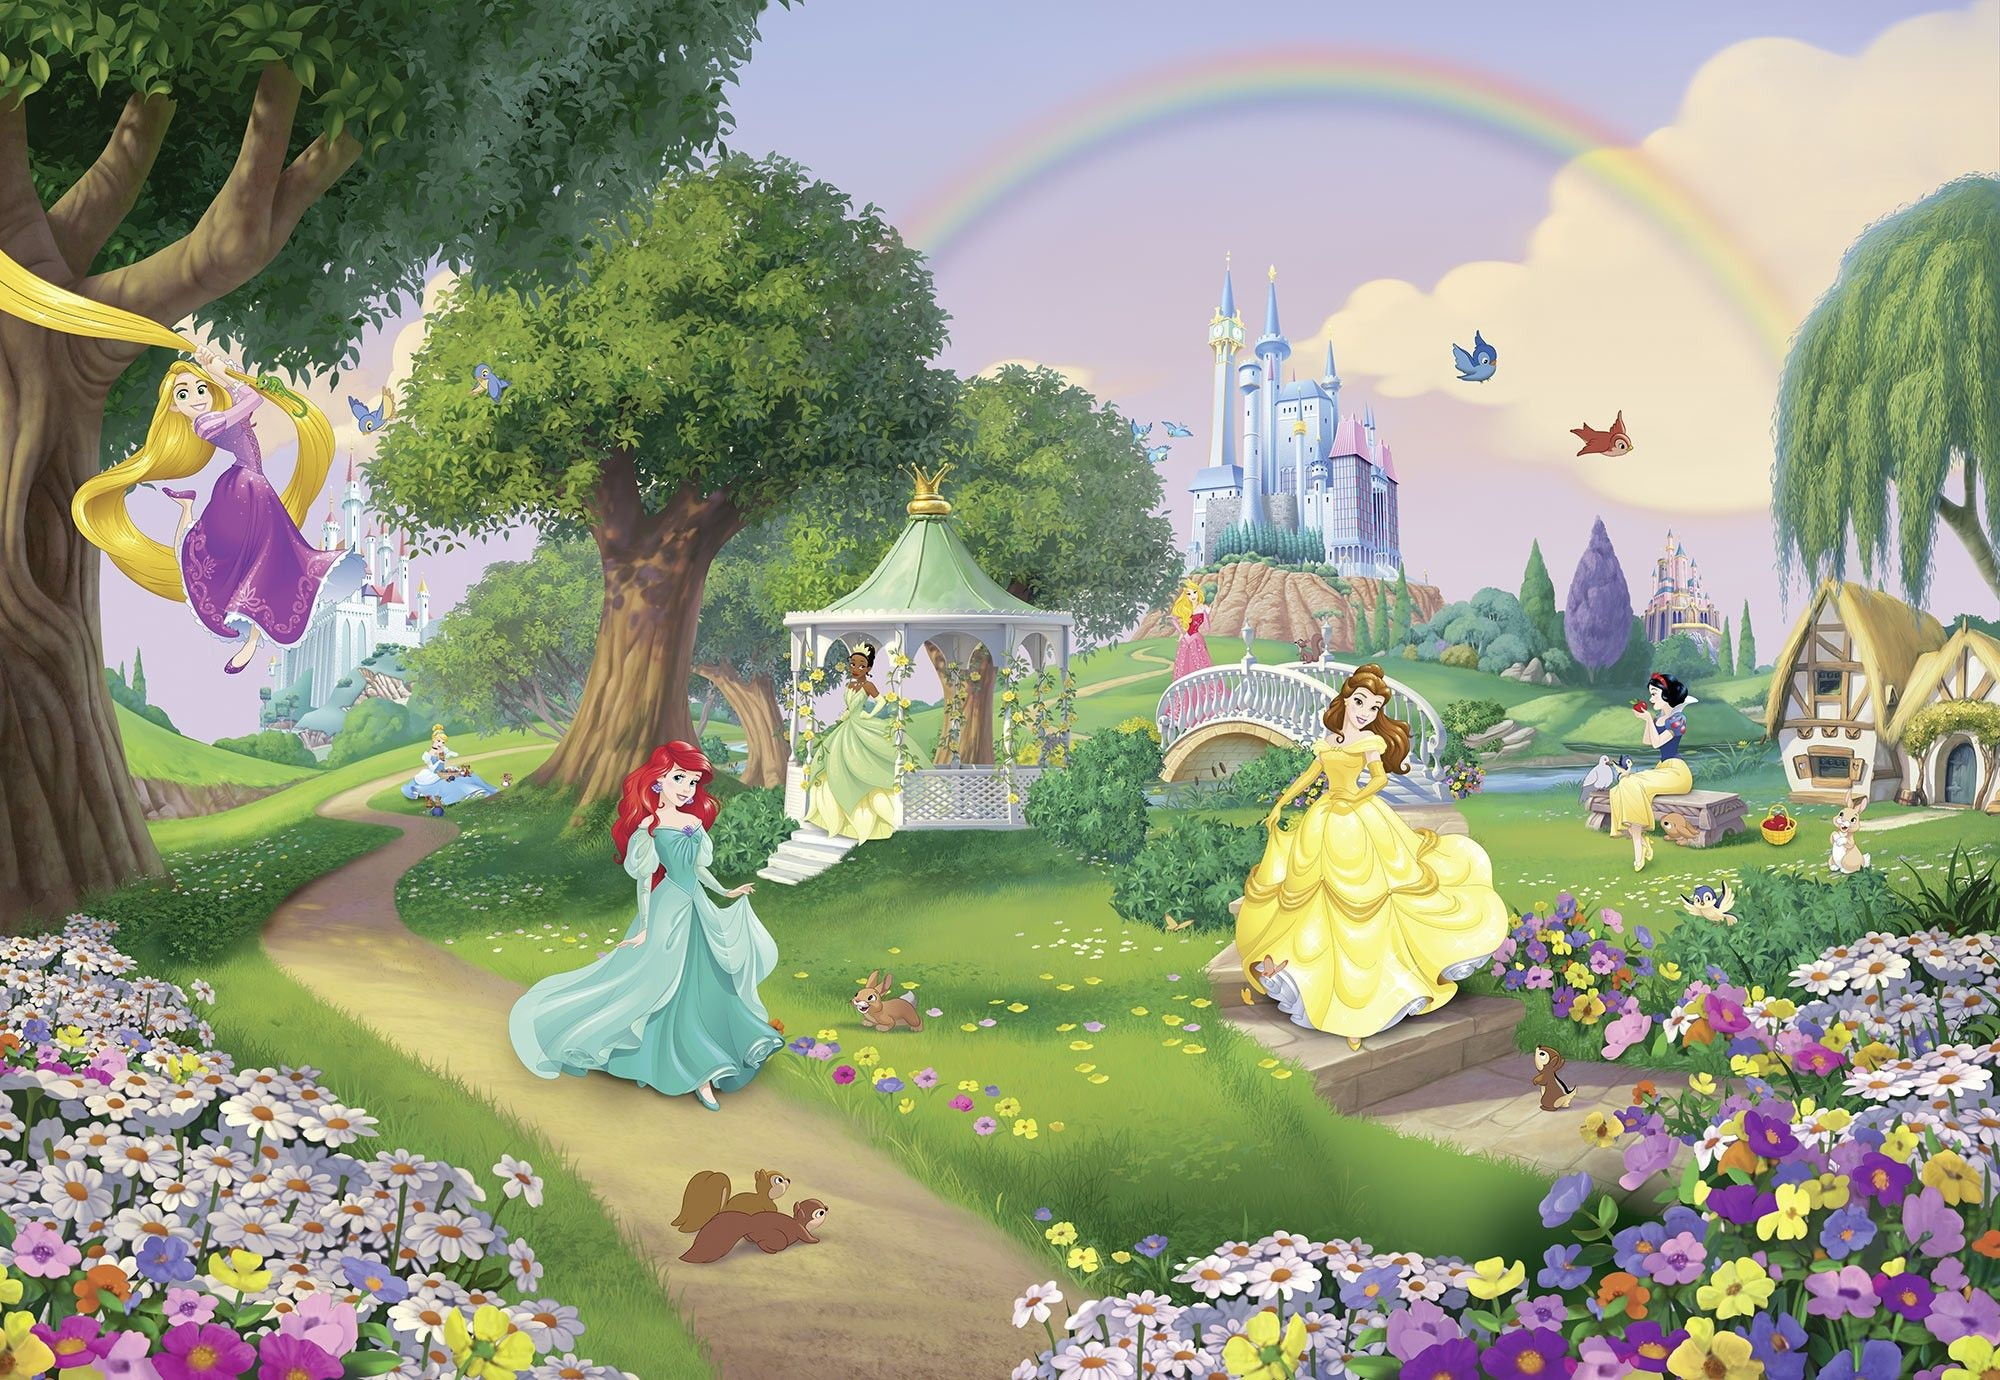 2000x1380 Details about Giant Wall mural photo Wallpaper 144x100inch Princess Castle  green garden Disney